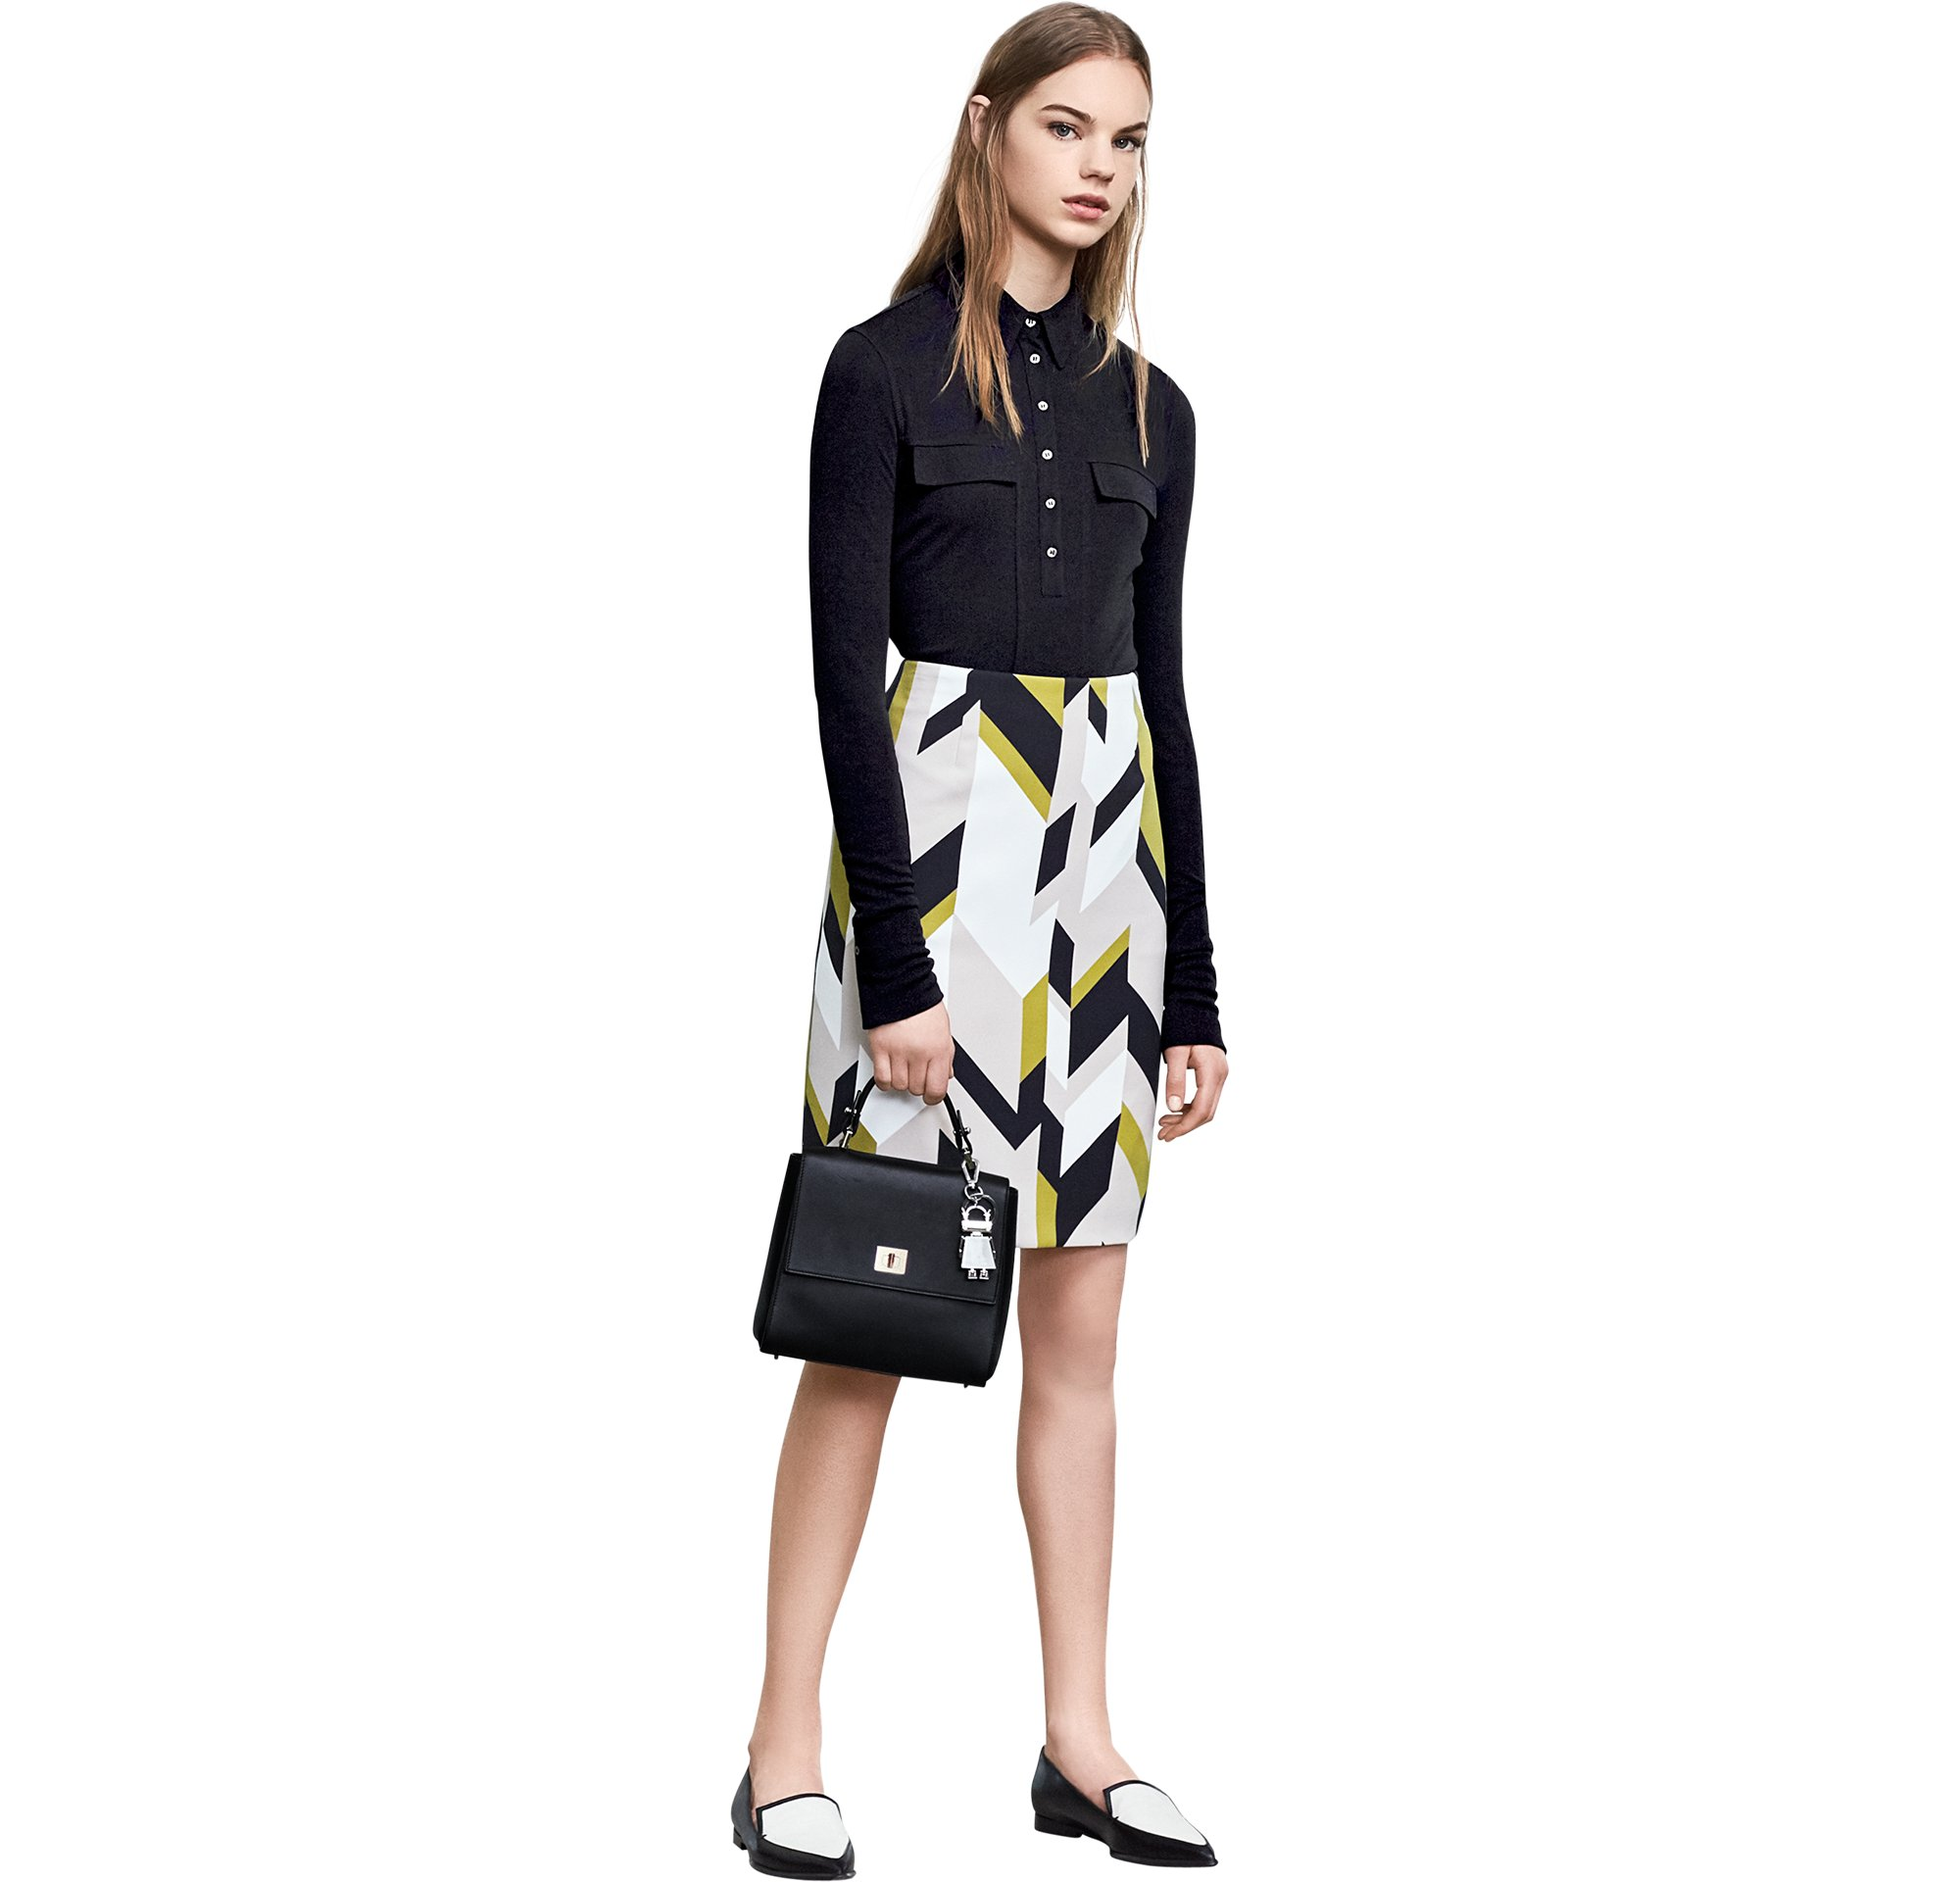 Black jersey over patterned skirt with bag and shoes by BOSS